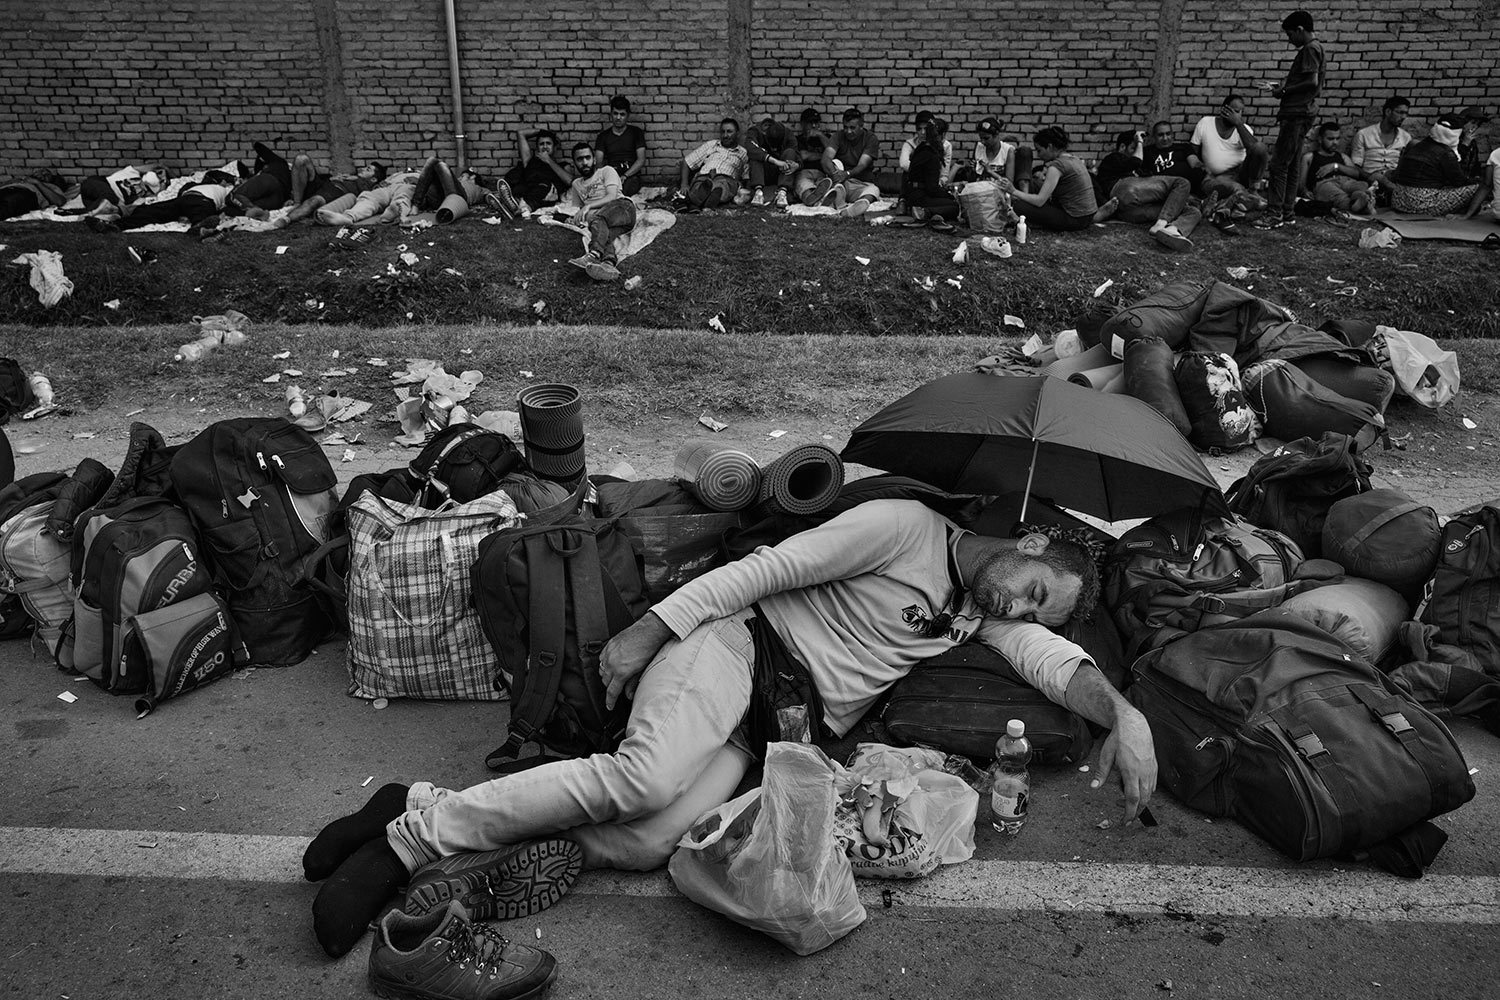 A man sleeps as he waits for a bus that will take him further into Croatia. Refugees line up their bags to save their place in the long lines for the few buses dispatched each day, Sept. 18, 2015.